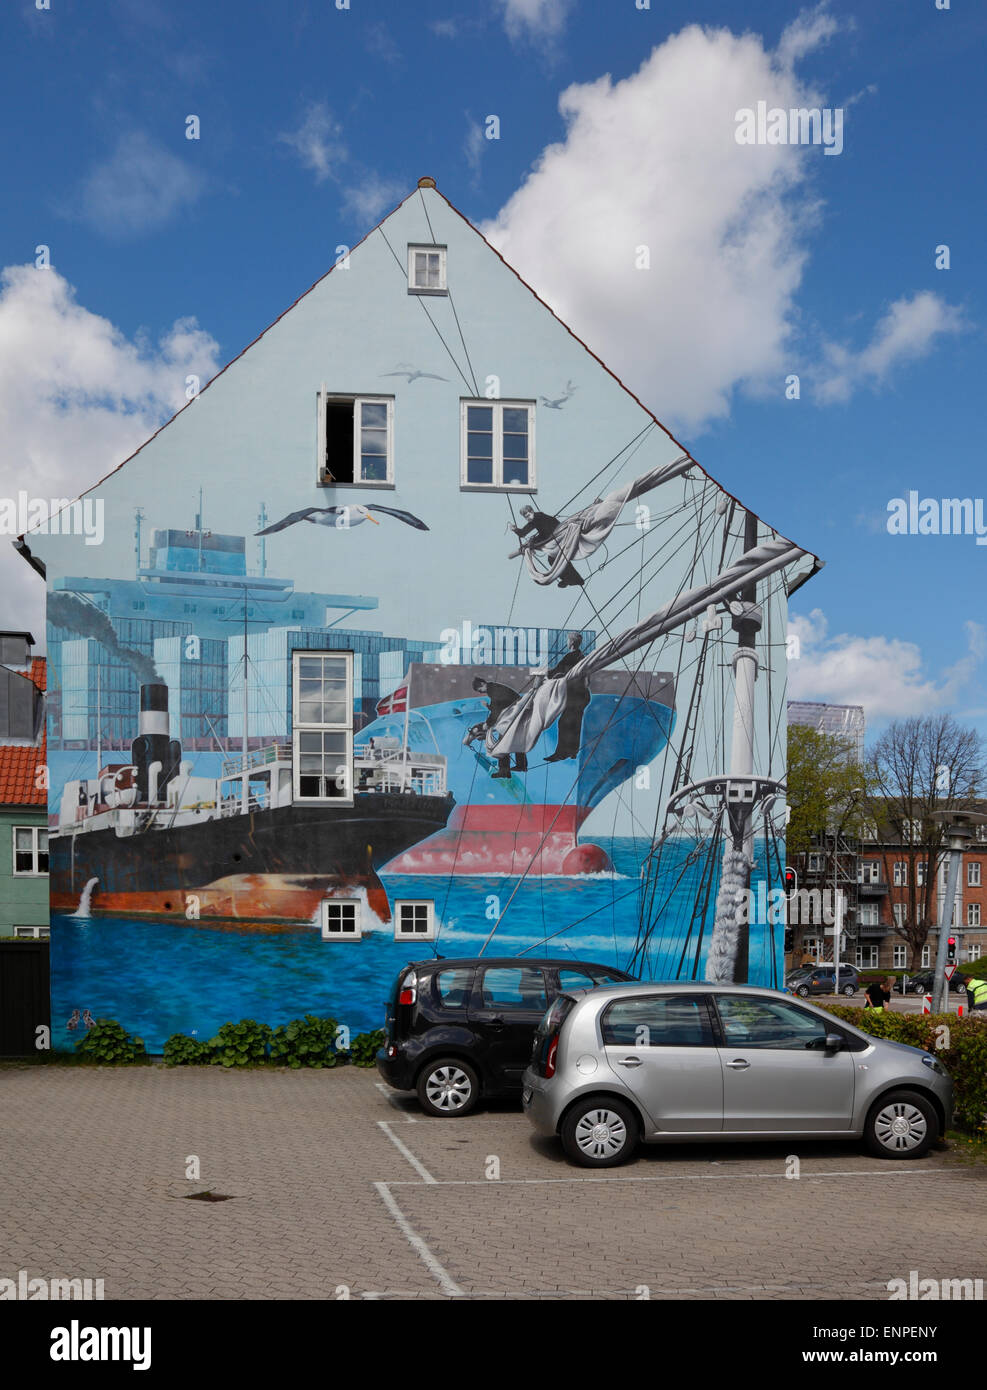 Mural of scene from the old Elsinore Shipyard by Garin Baker on a house in the historic and busy harbour district - Stock Image